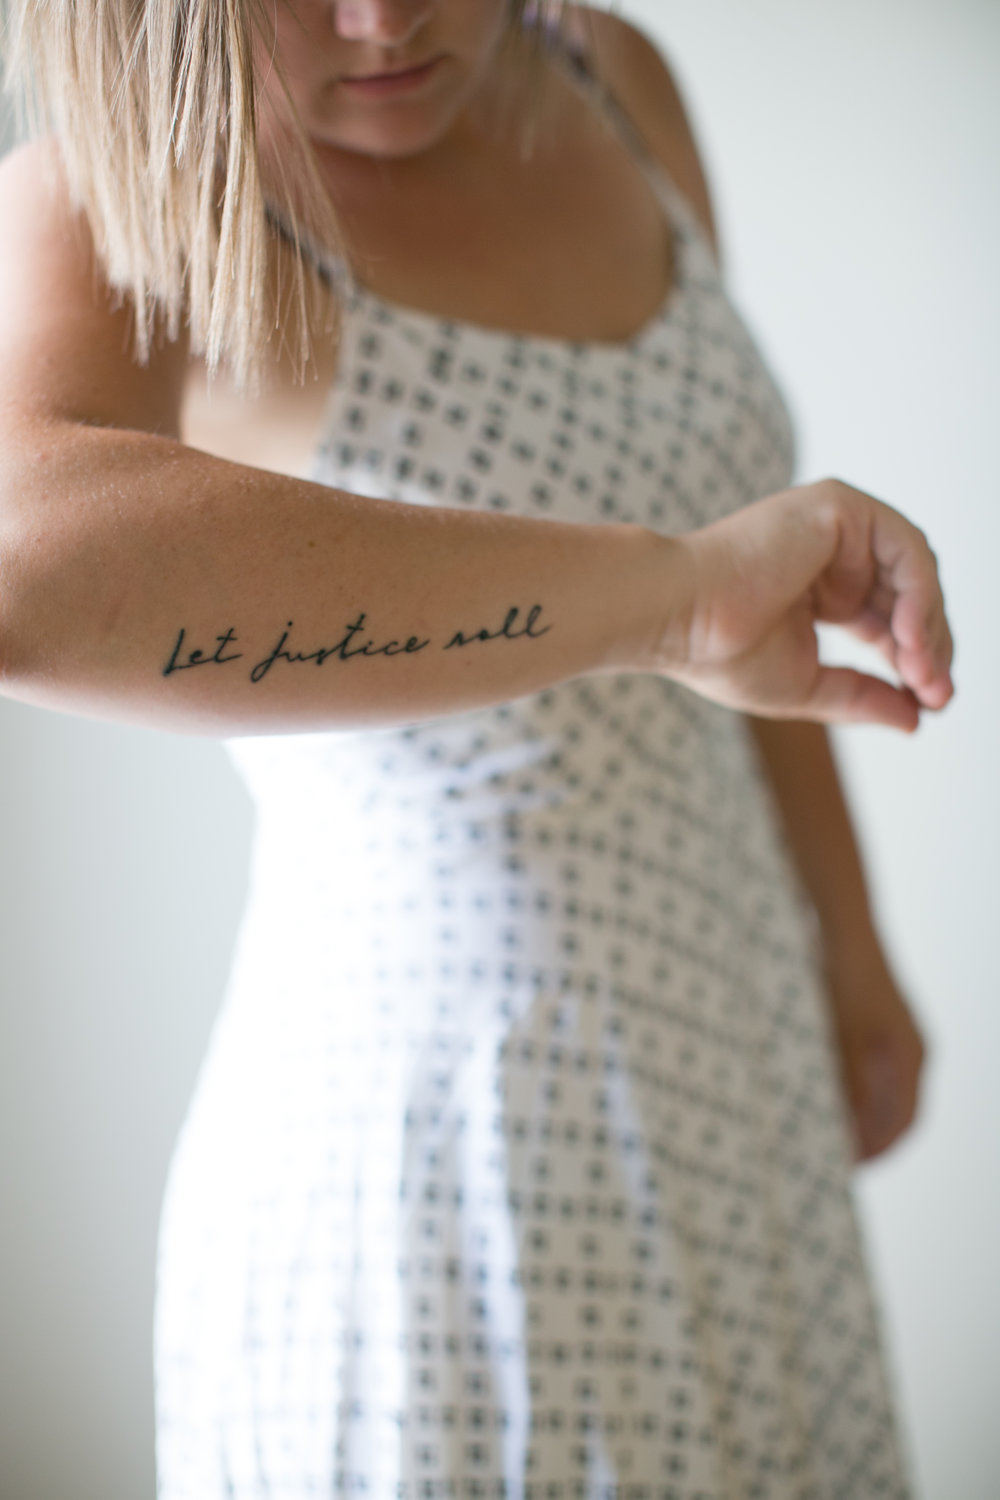 let justice roll tattoo script tattoo